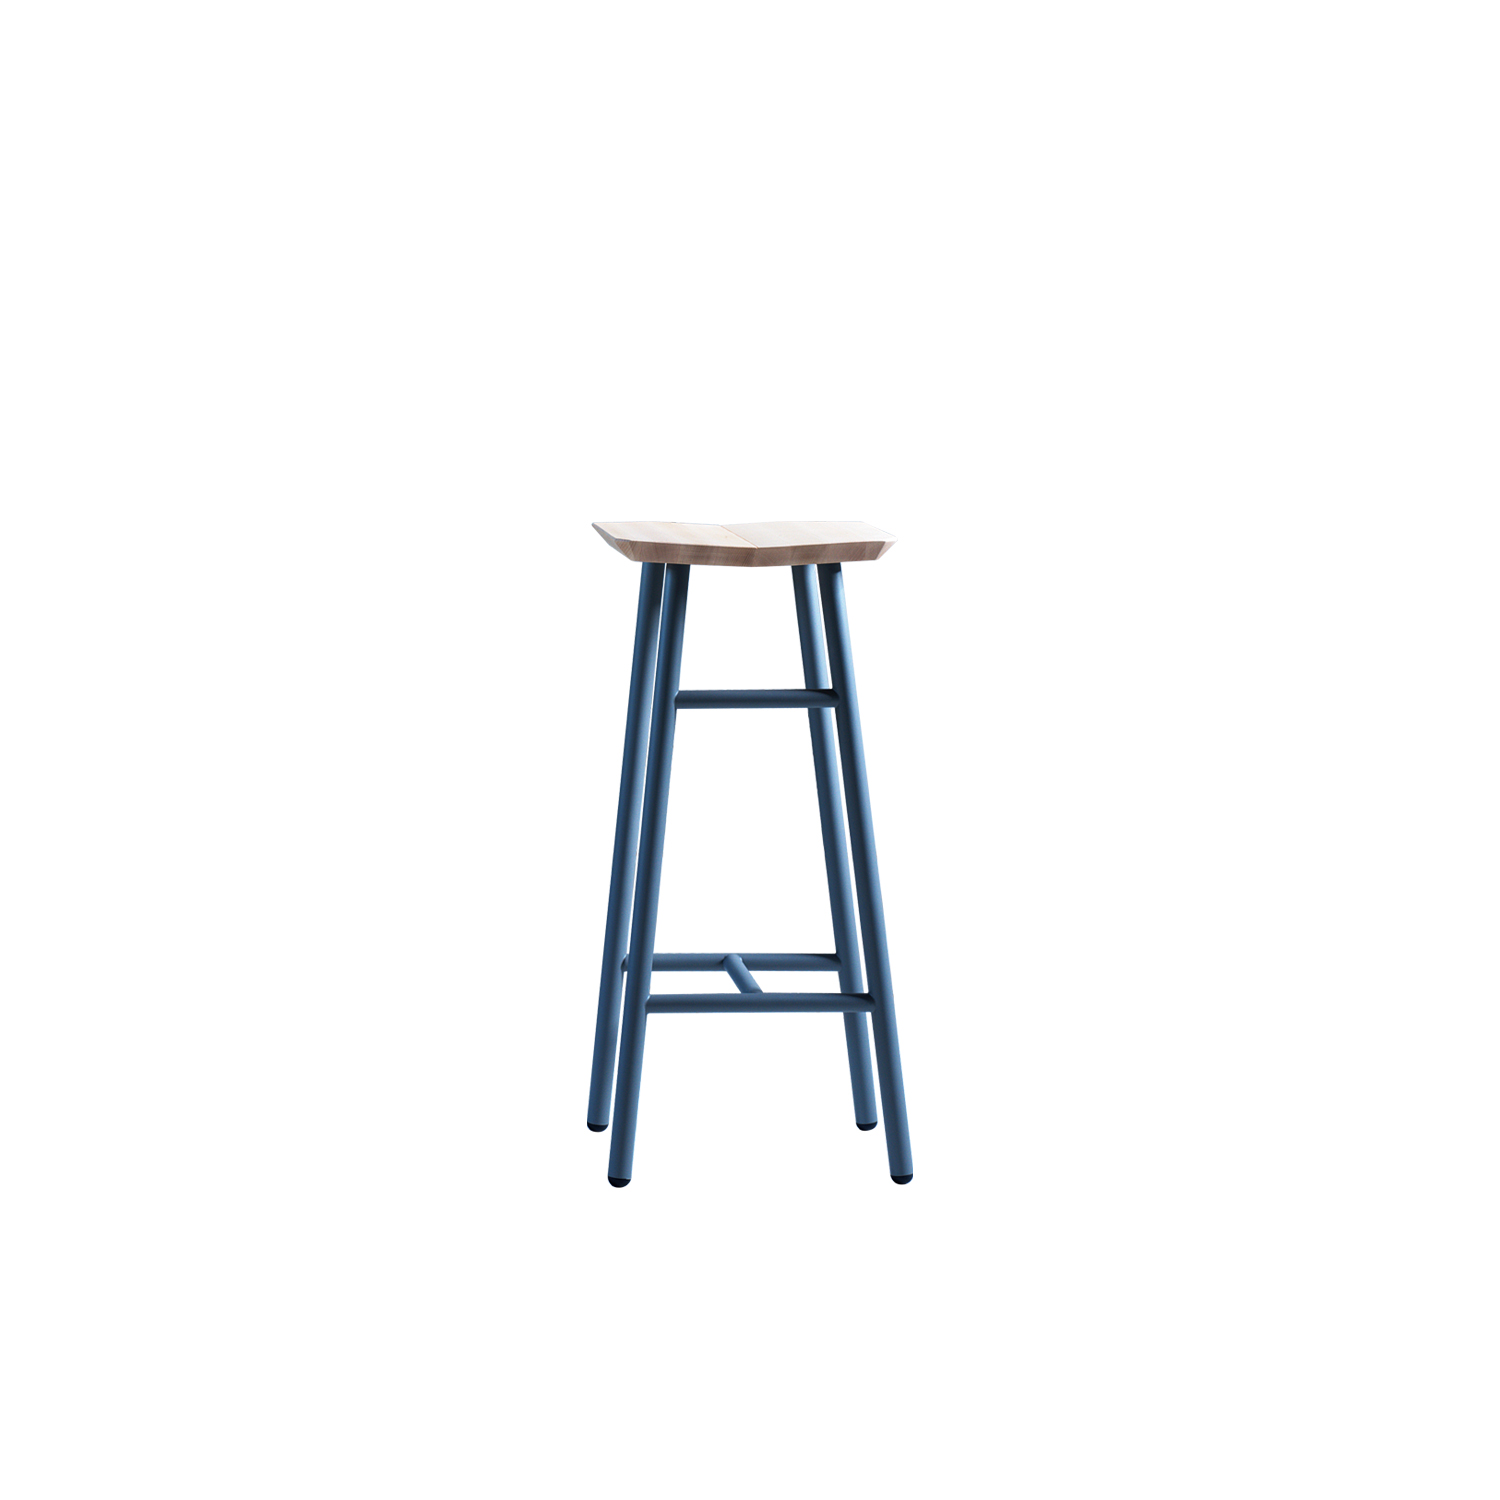 Dedo Stool - Dedo features an ergonomic wooden chair that sits on a solid structure made of steel. Available in three heights, it is particularly suited to turnkey projects and island kitchens.